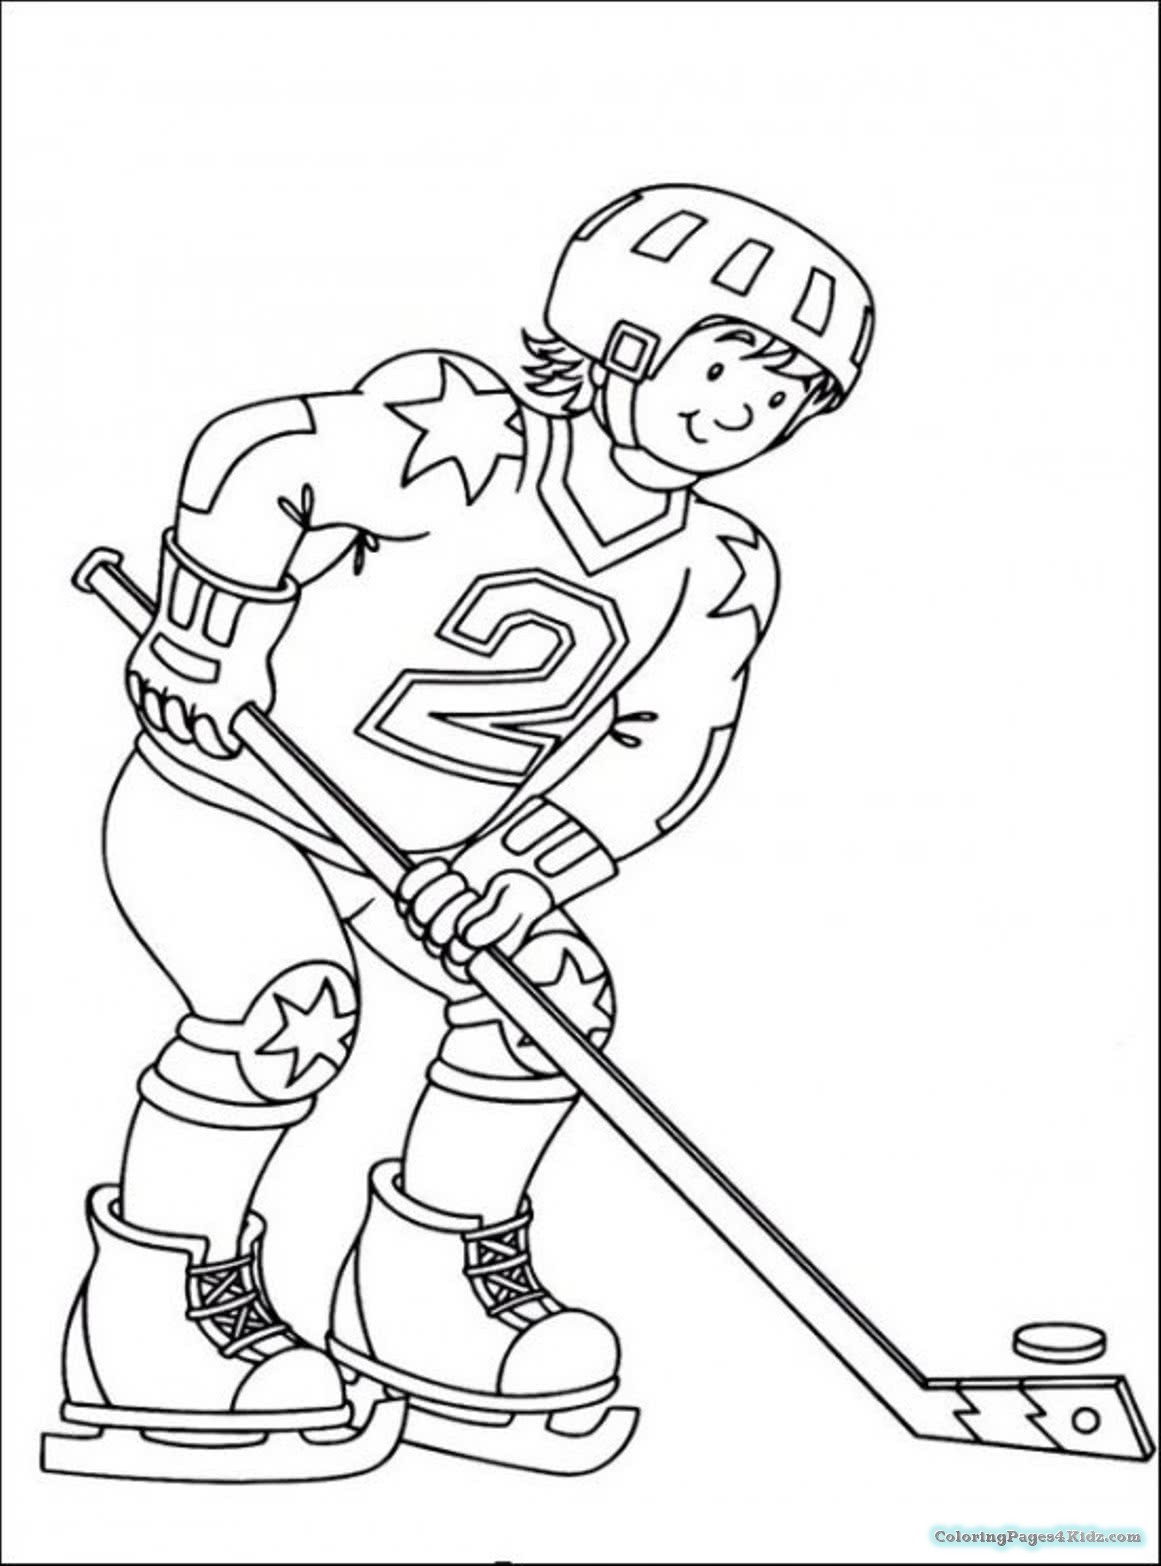 how to draw sport rink pictures